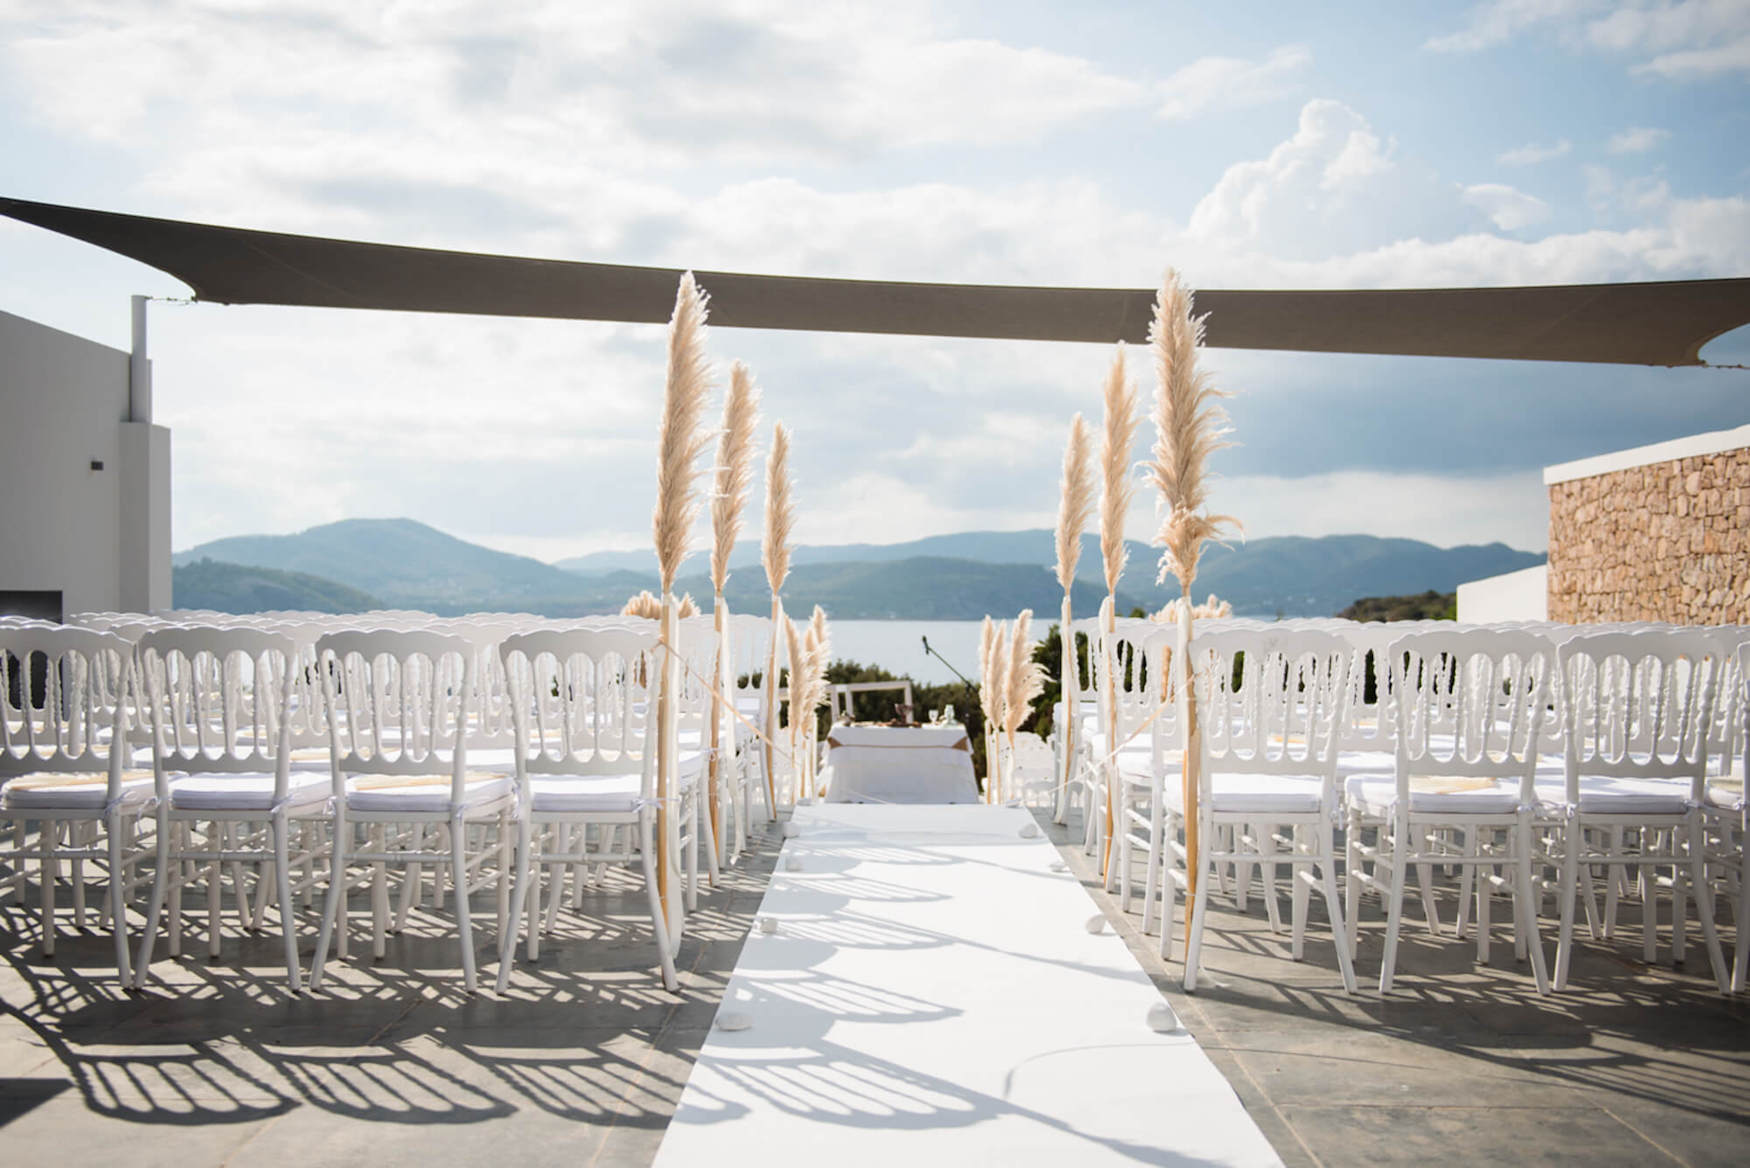 ceremony by the sea hills background pampas grass shadows